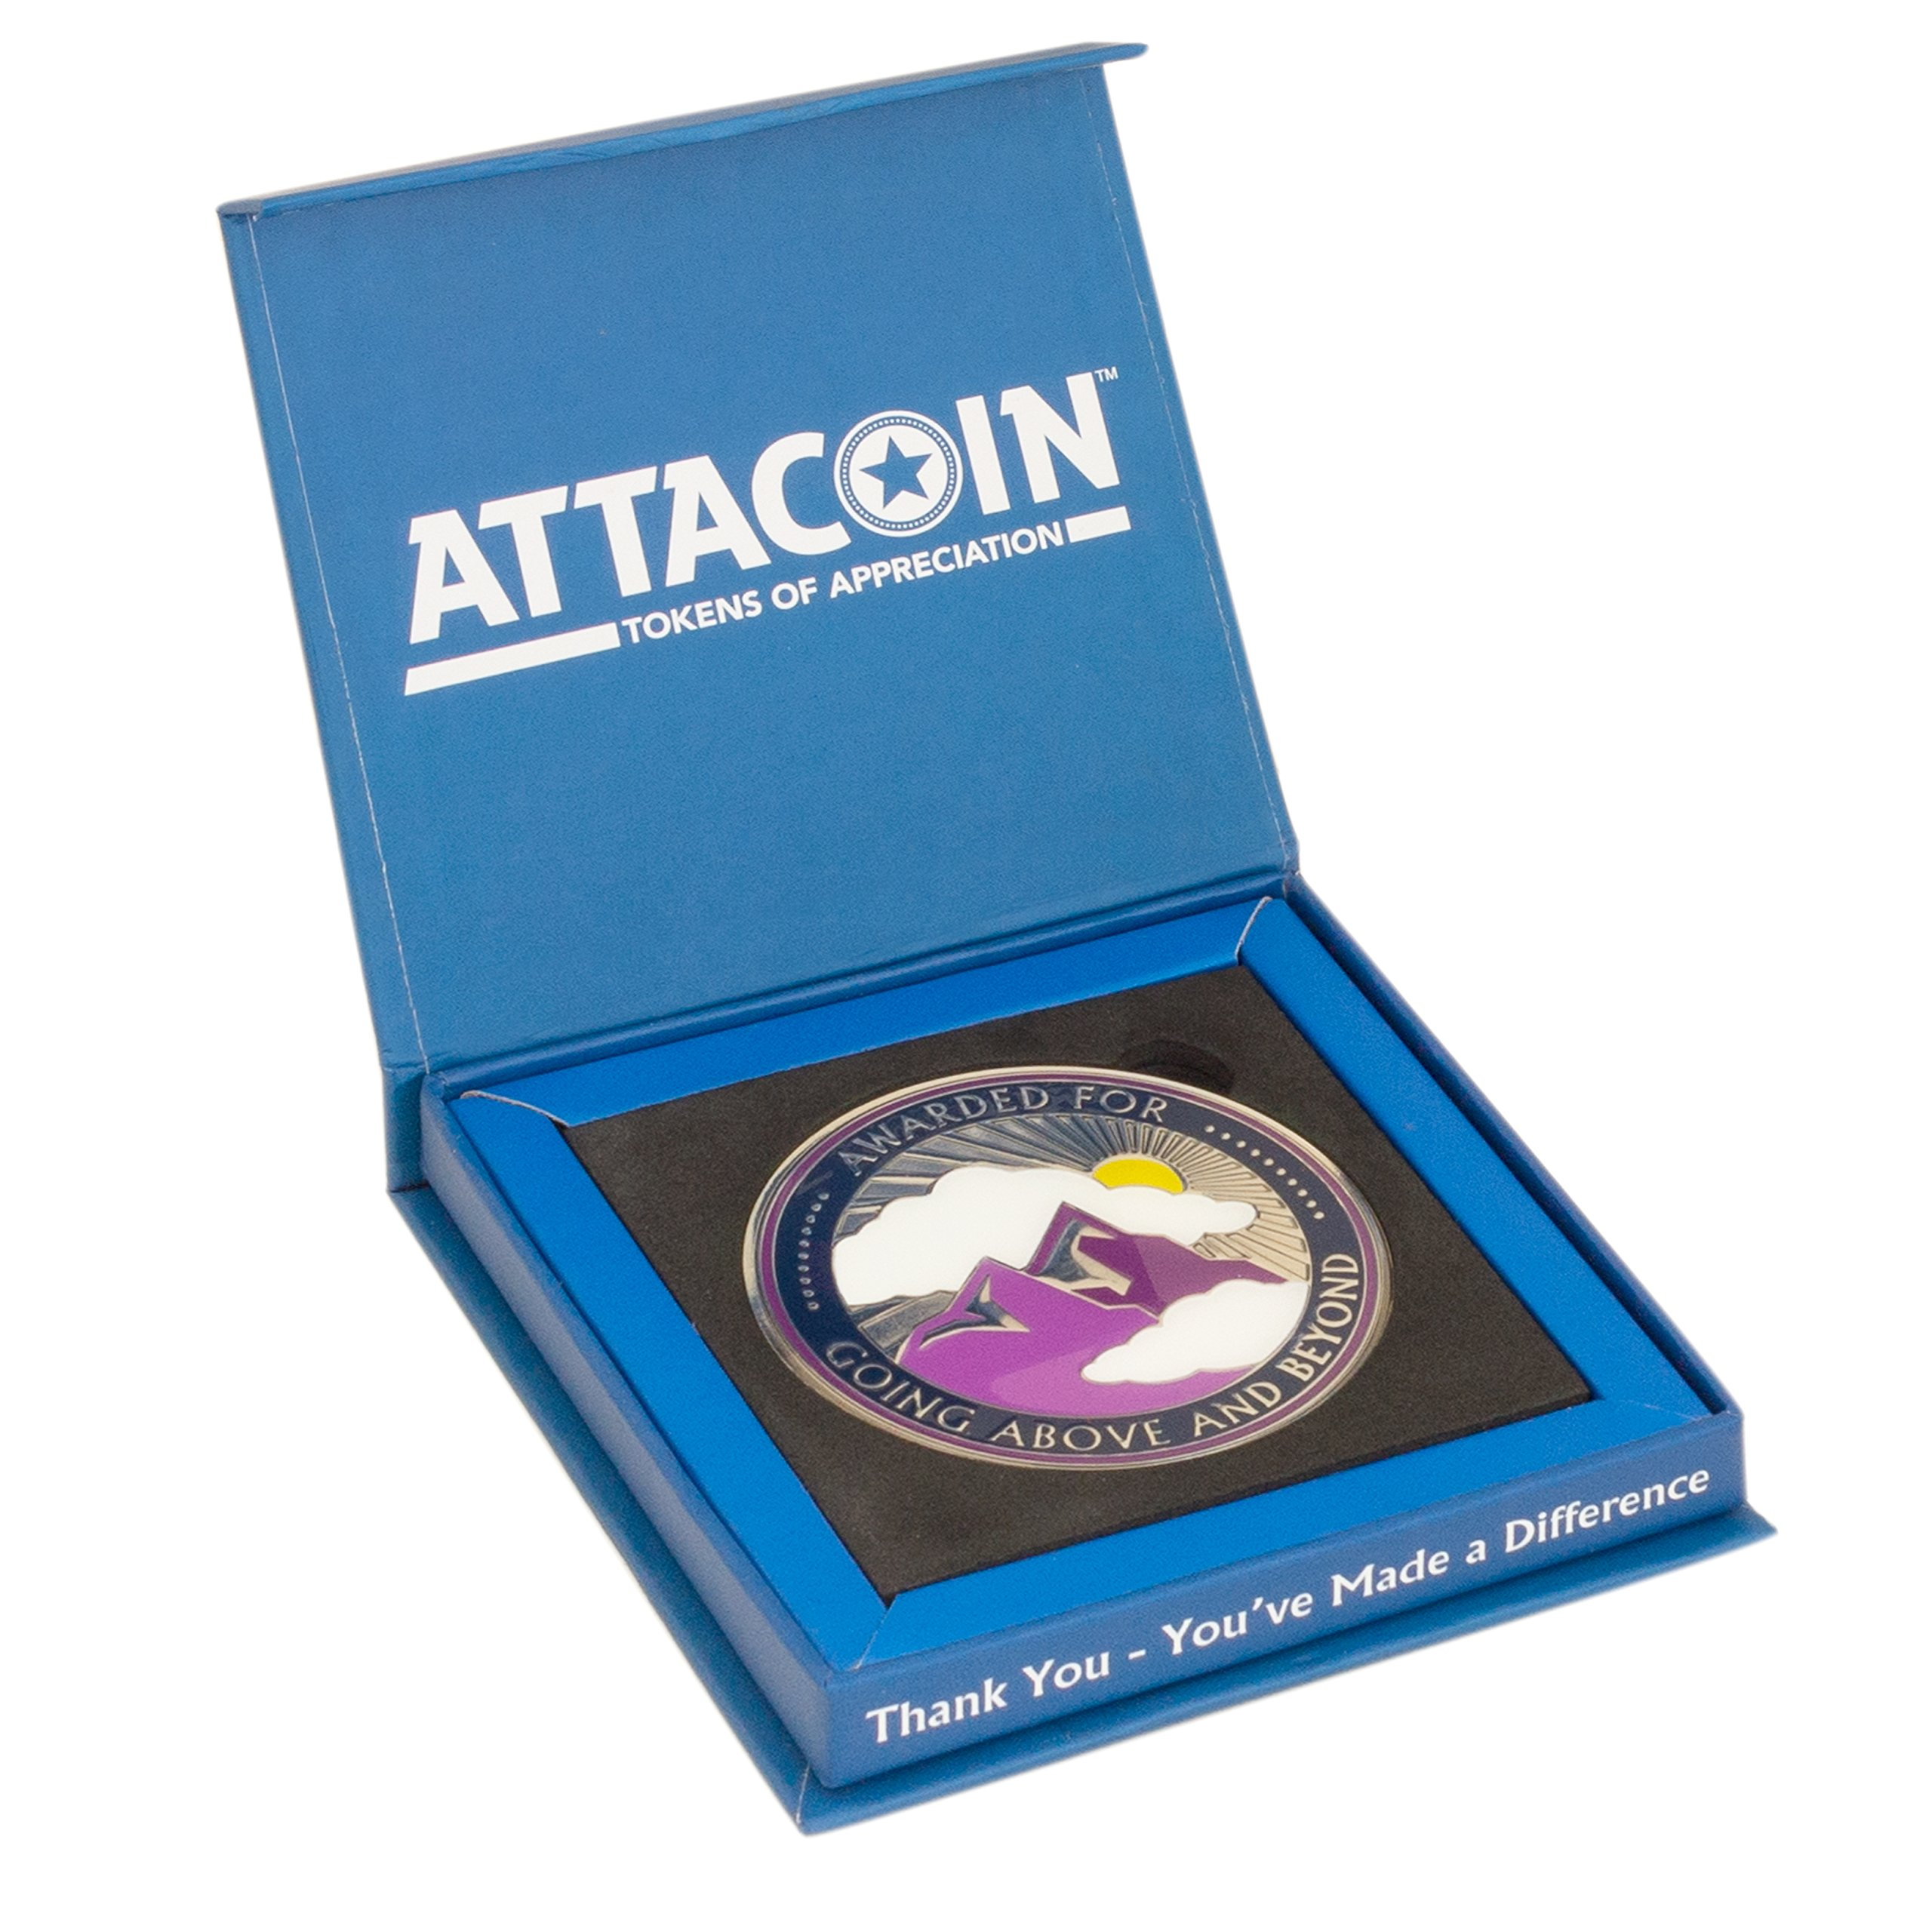 AttaCoin Large Going Above and Beyond Coin + Display Box, Thank You Gift Series by AttaCoin